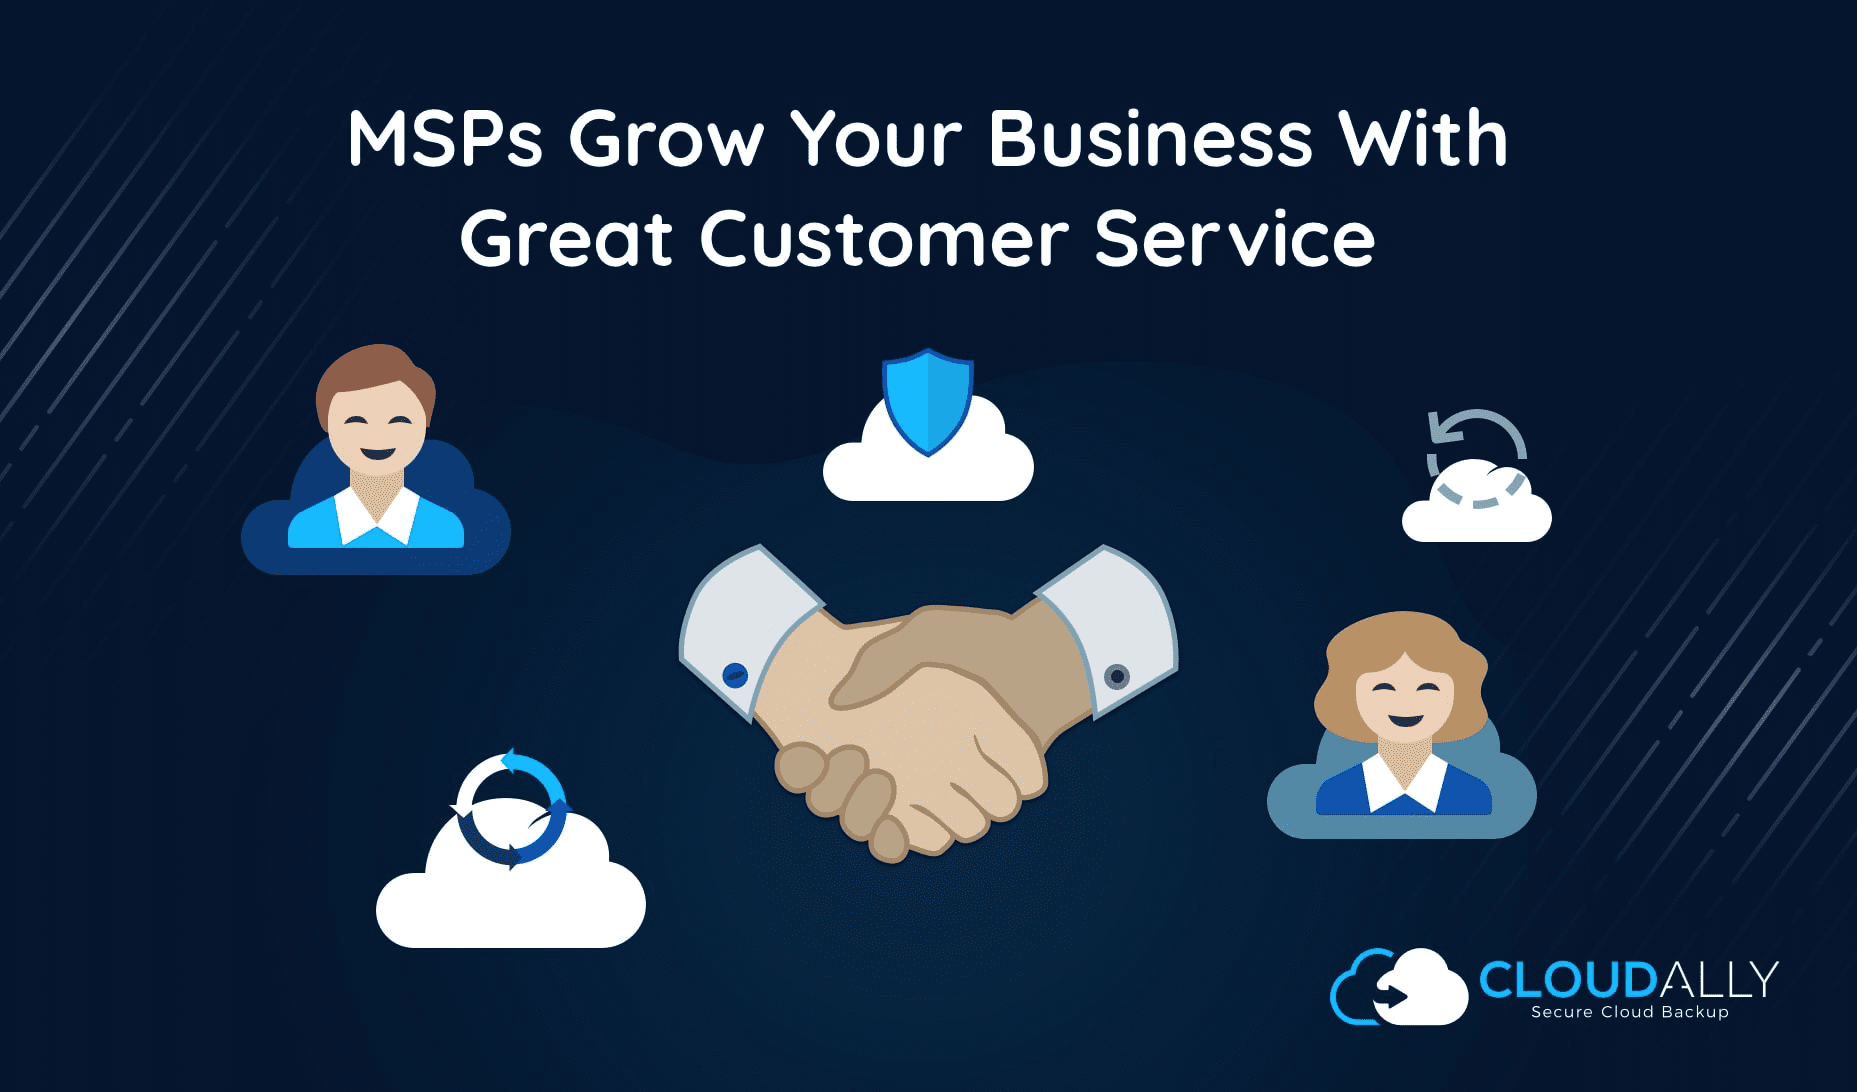 msp backup customer service